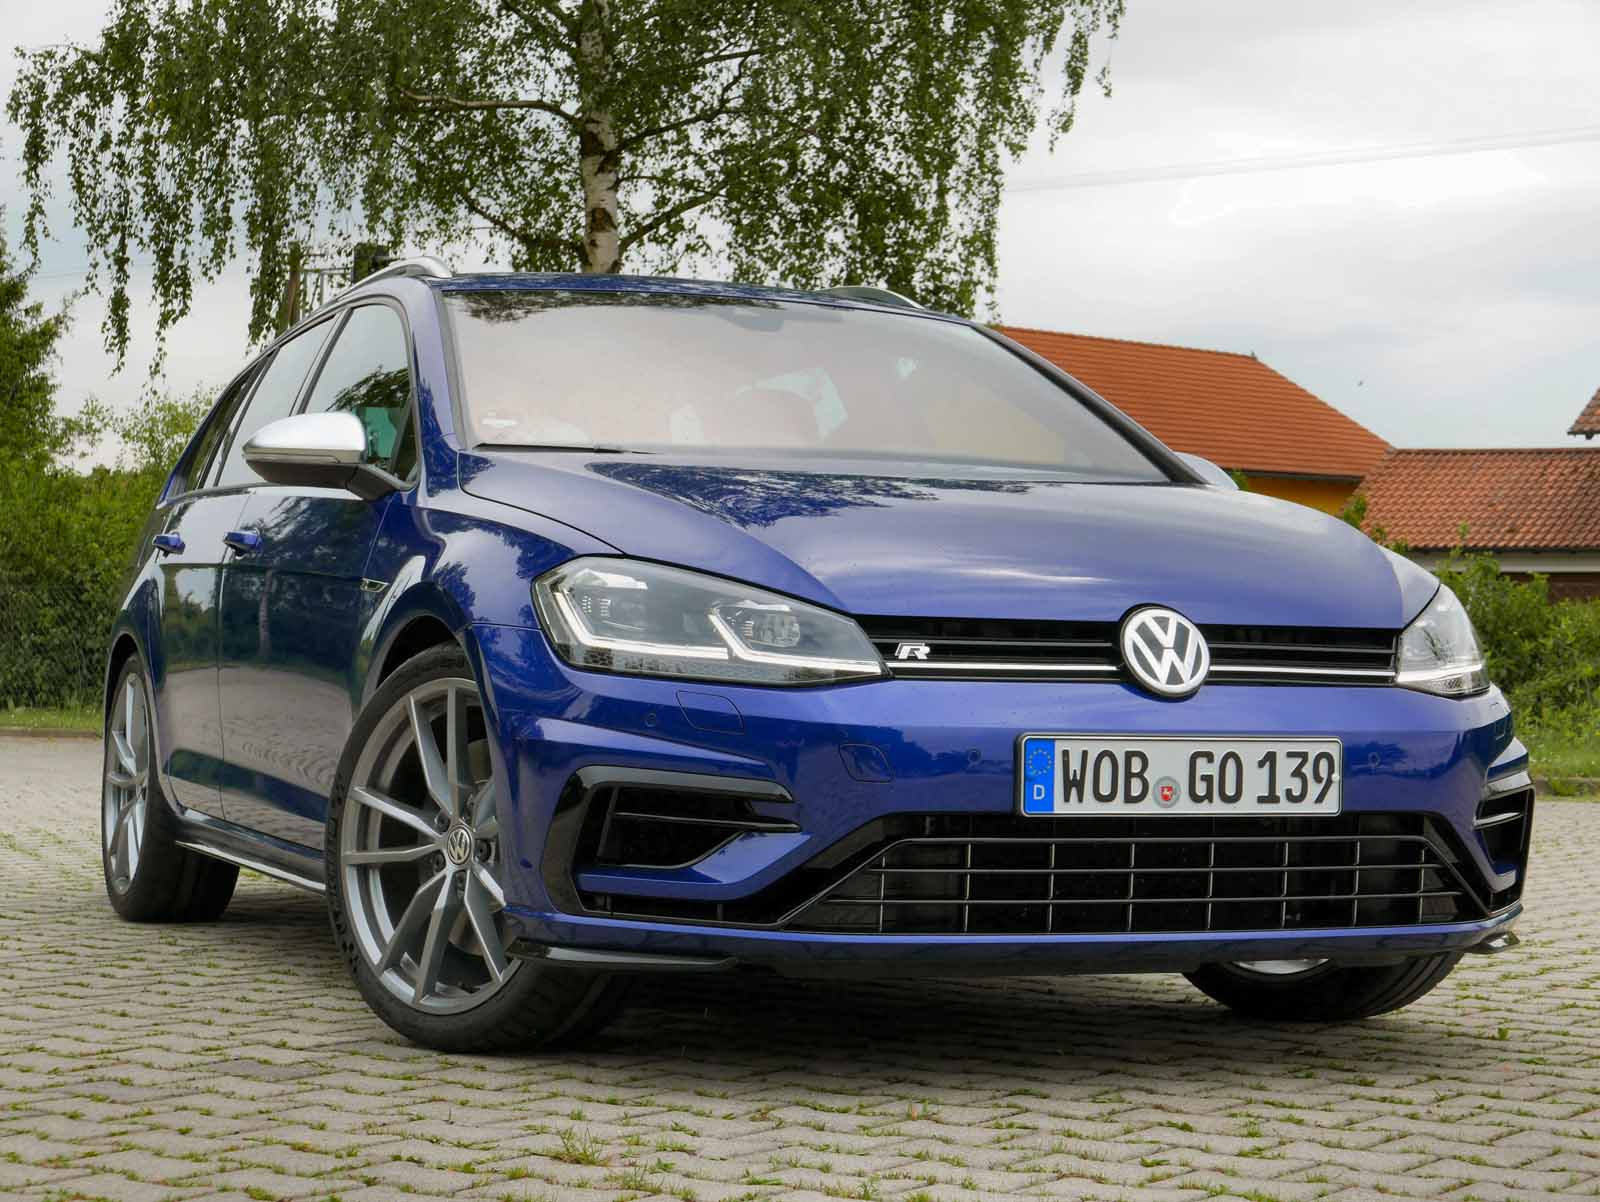 volkswagen golf r vs golf gti performance 2018 review autos post. Black Bedroom Furniture Sets. Home Design Ideas